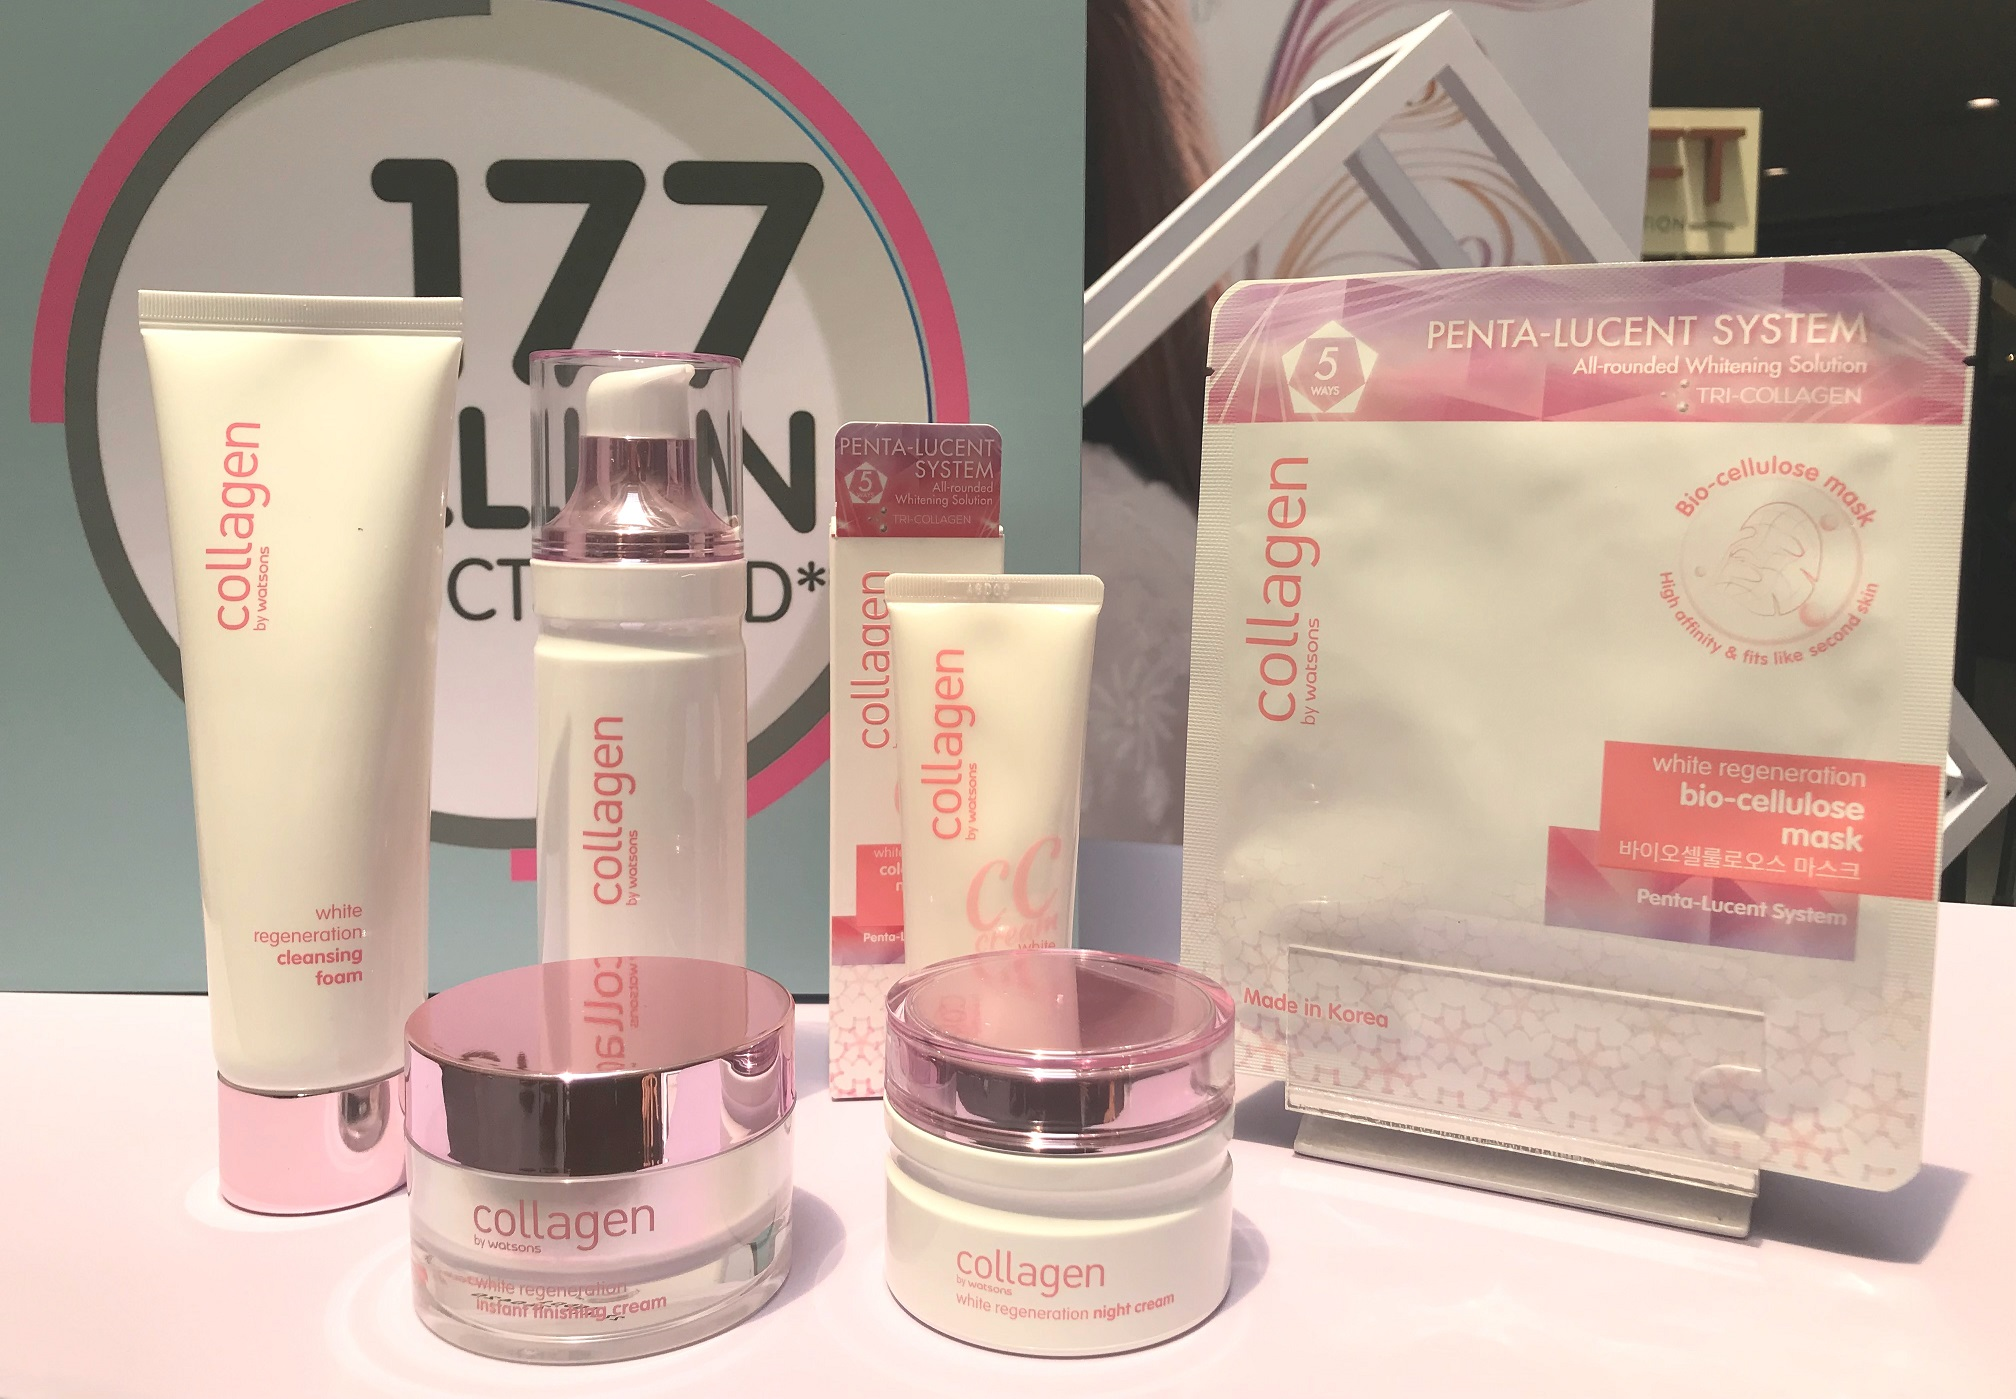 Watson's Launches their Very Own Collagen Line in the Philippines